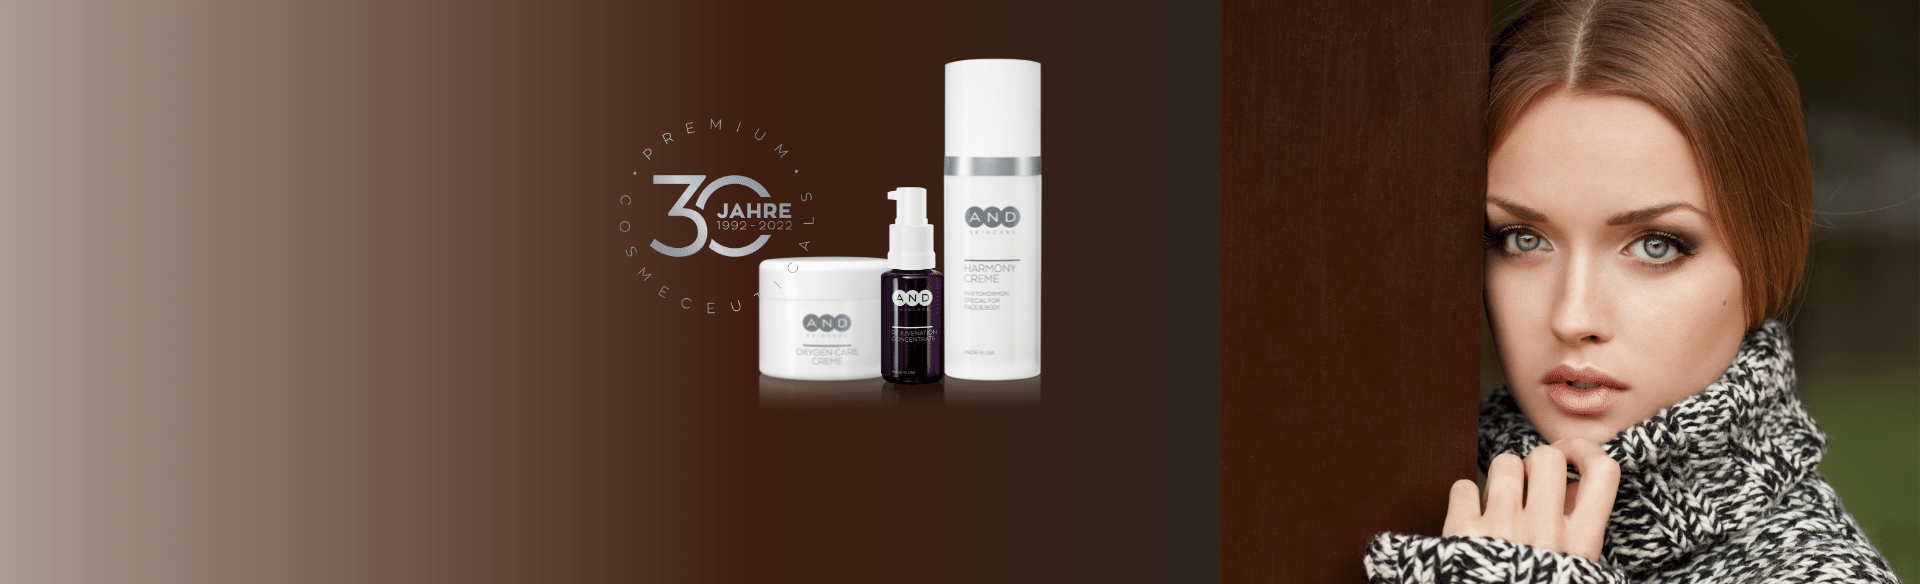 AND-skincare_Herbst